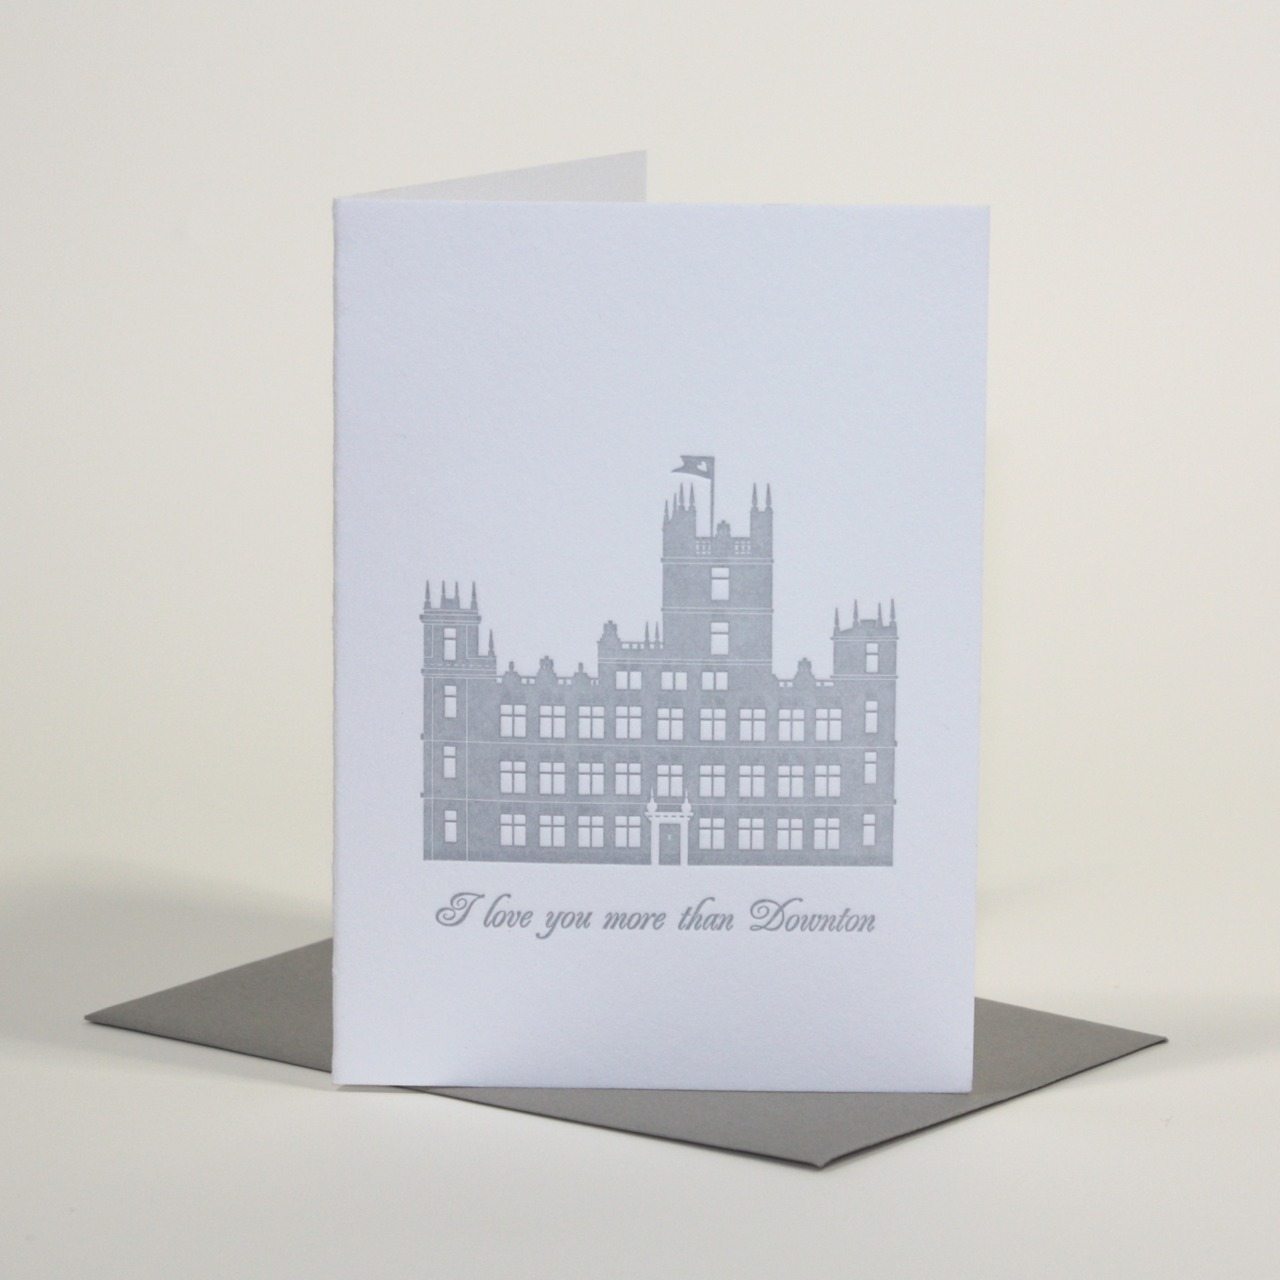 Back by popular demand! I have printed a second run of 100 Downton Abbey cards also available in my Etsy Shop. this time in Pewter Grey with a Gravel Grey envelope. The first edition sold so well and so many people are still asking for them, so eventually I broke down and here we are! Downton Forever xo